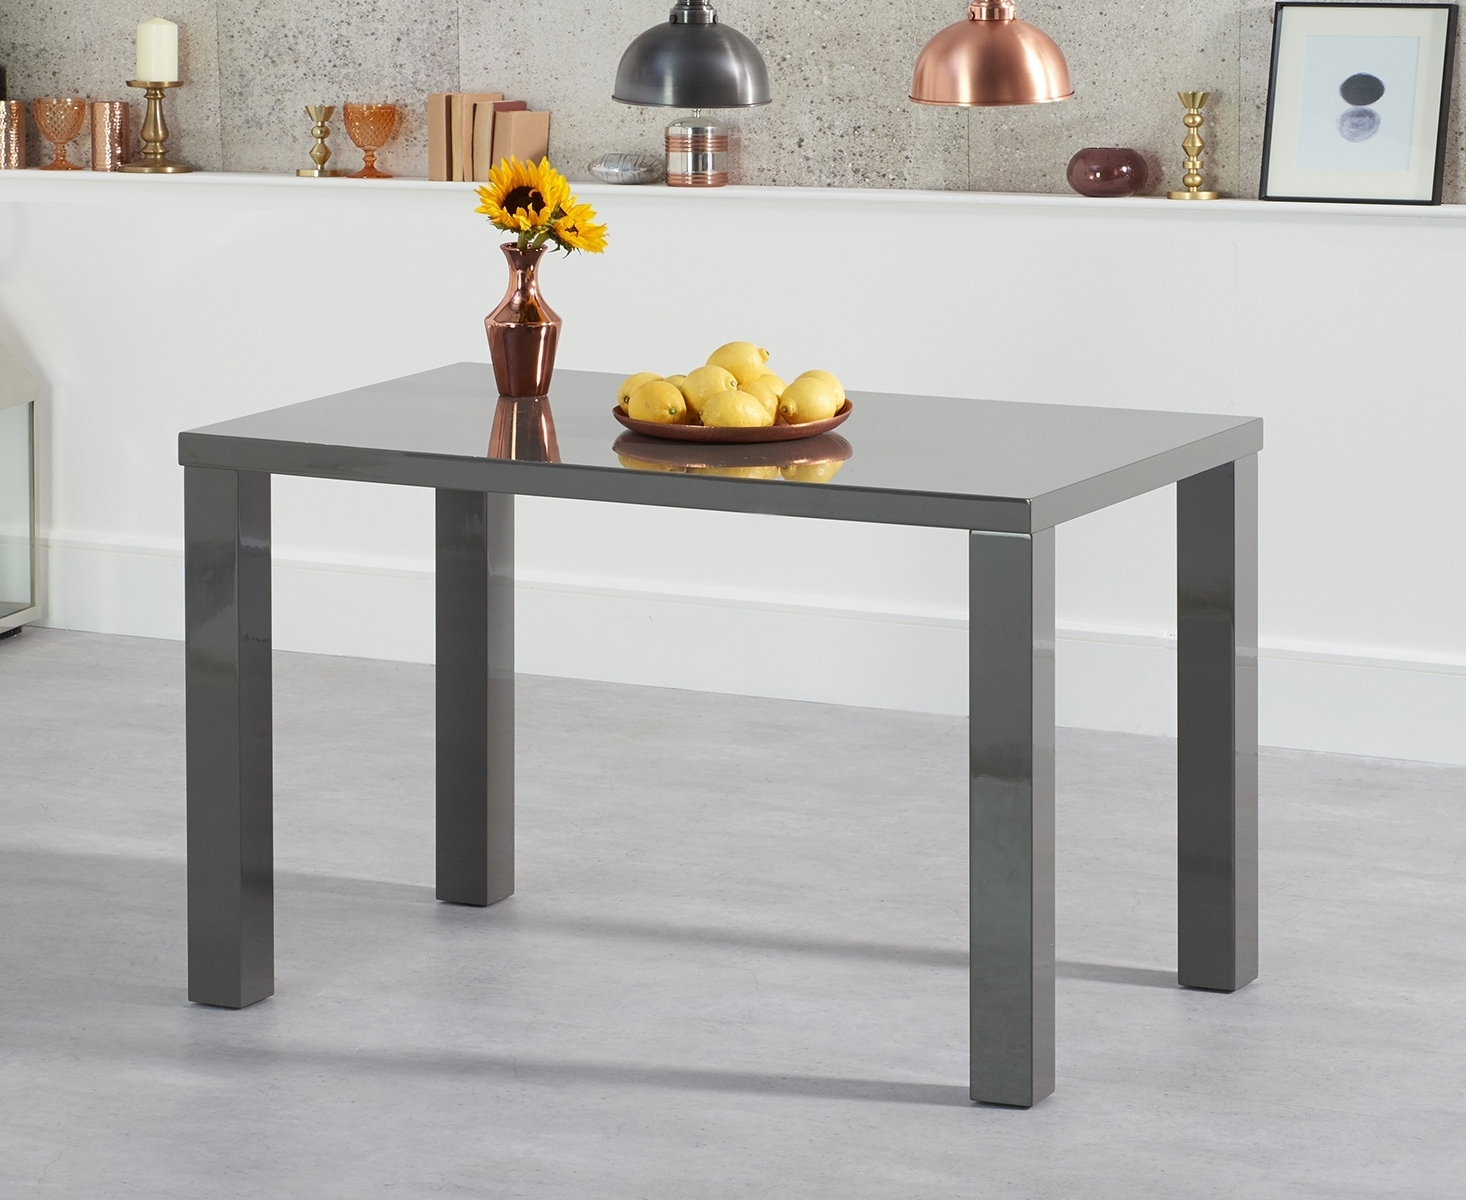 [%Ava 120Cm Dark Grey High Gloss Dining Table [255064] – £237.00 Intended For Widely Used White Gloss Dining Tables 120Cm|White Gloss Dining Tables 120Cm Regarding 2018 Ava 120Cm Dark Grey High Gloss Dining Table [255064] – £237.00|Best And Newest White Gloss Dining Tables 120Cm Throughout Ava 120Cm Dark Grey High Gloss Dining Table [255064] – £237.00|Most Recently Released Ava 120Cm Dark Grey High Gloss Dining Table [255064] – £ (View 15 of 25)